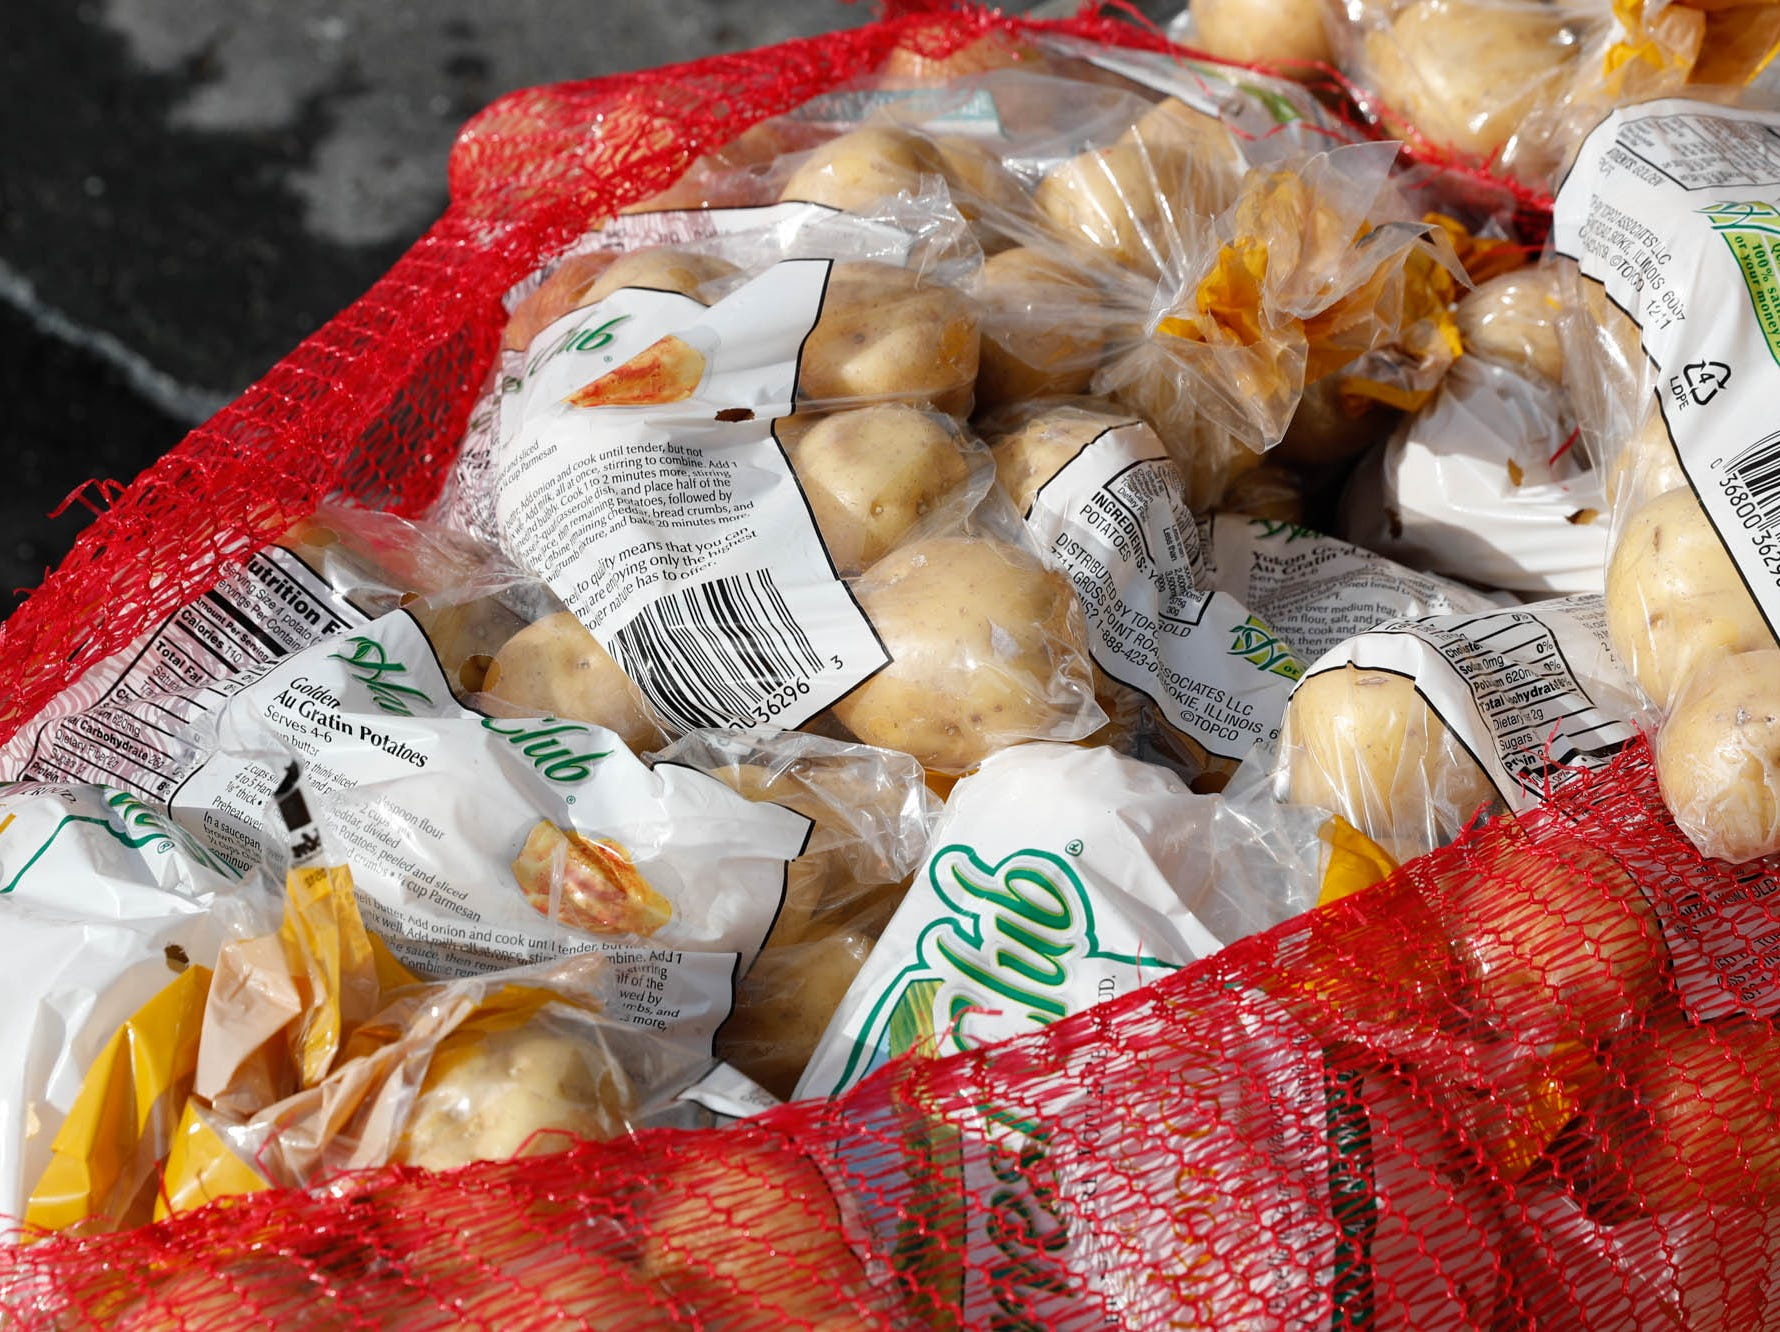 Bags of potatoes are laid out along with Gleaners Food Bank boxes to be given by volunteers from Old Bethel UMC, to TSA  employees affected by the government shutdown, at the Transportation Security Administration offices, 8303 W Southern Ave., Indianapolis, on Thursday, Jan. 24, 2019.